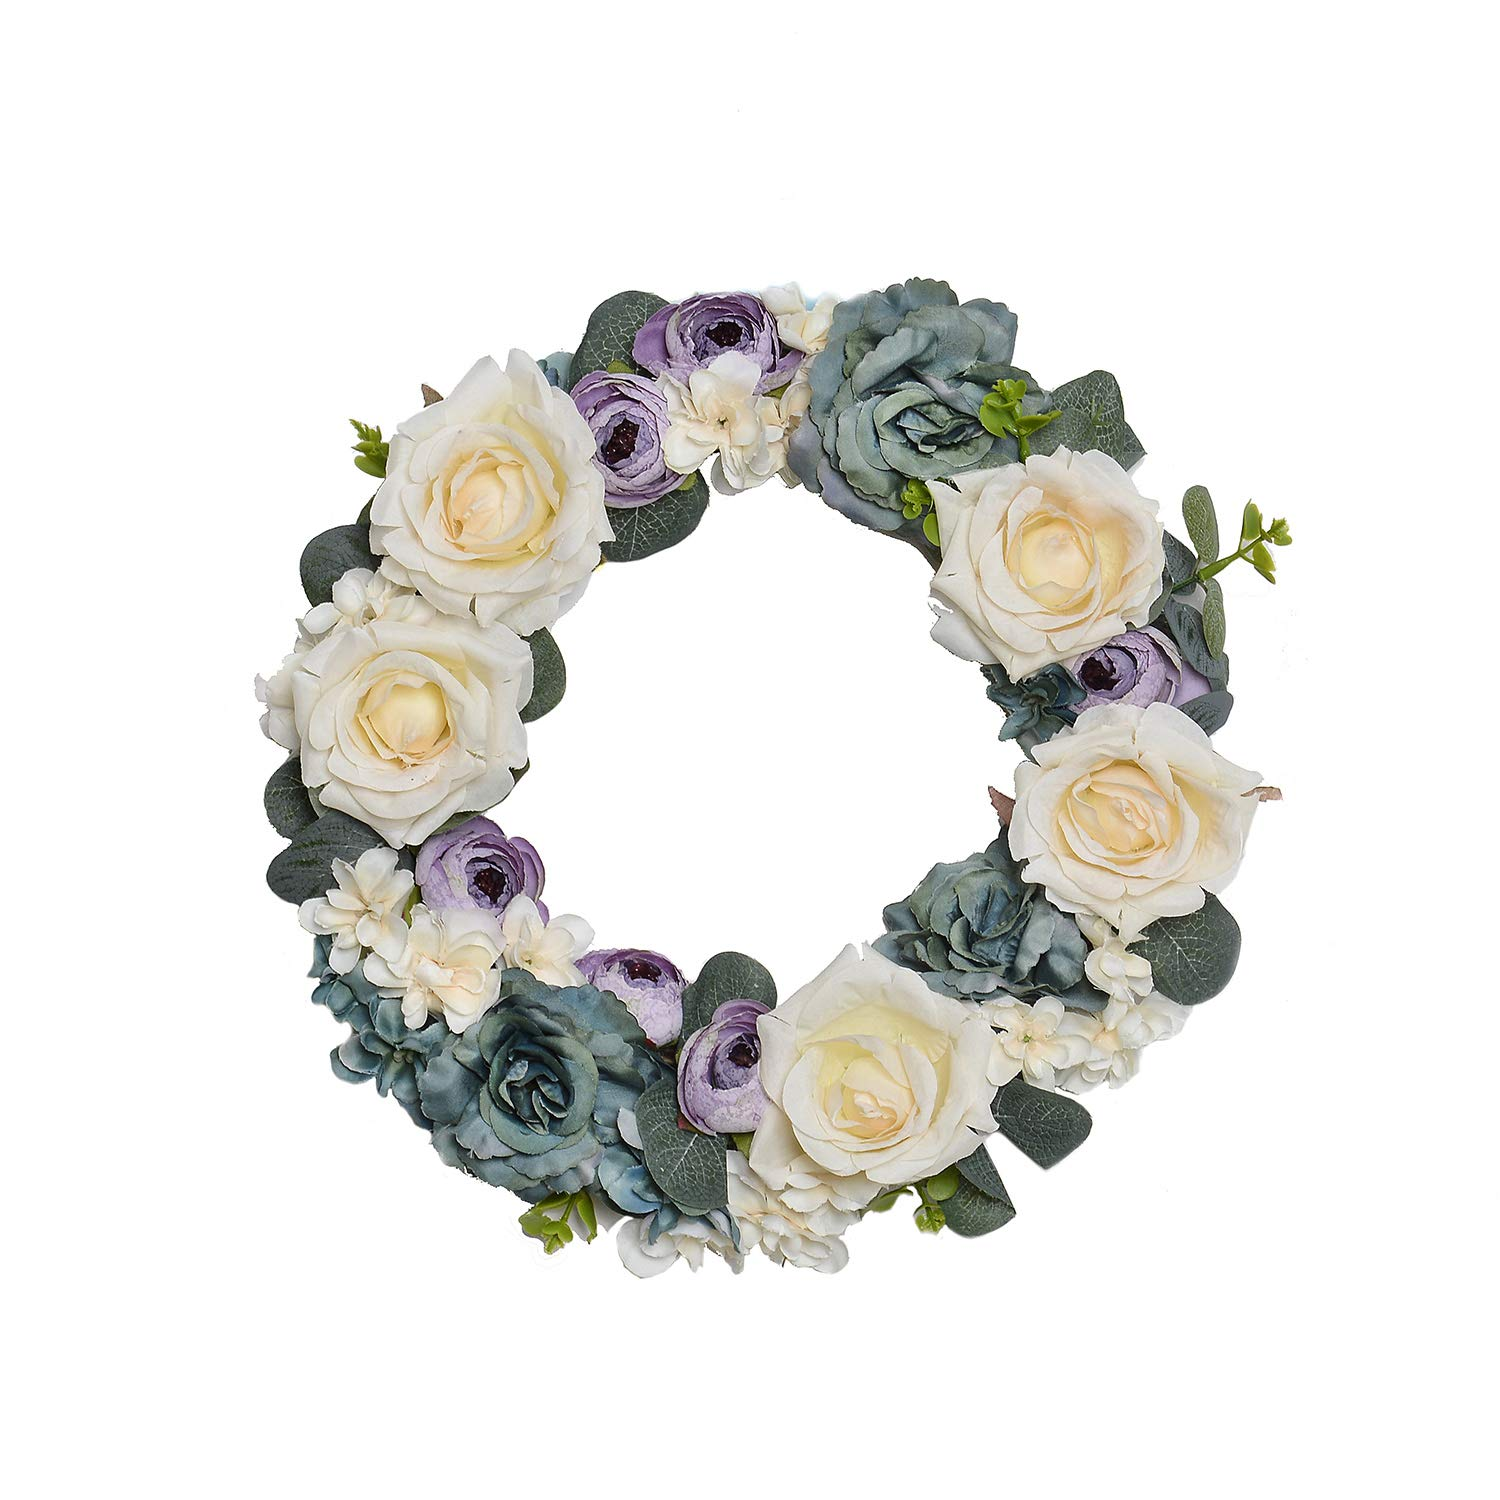 FAVOWREATH LOVE Series FAVO-W95 Handmade 11 inch White,Green Roses Purple Bud Grapevine Wreath For Summer/Fall Season Festival Celebration Front Door/Wall/Fireplace Everyday Nearly Natural Home Decor by FAVOWREATH